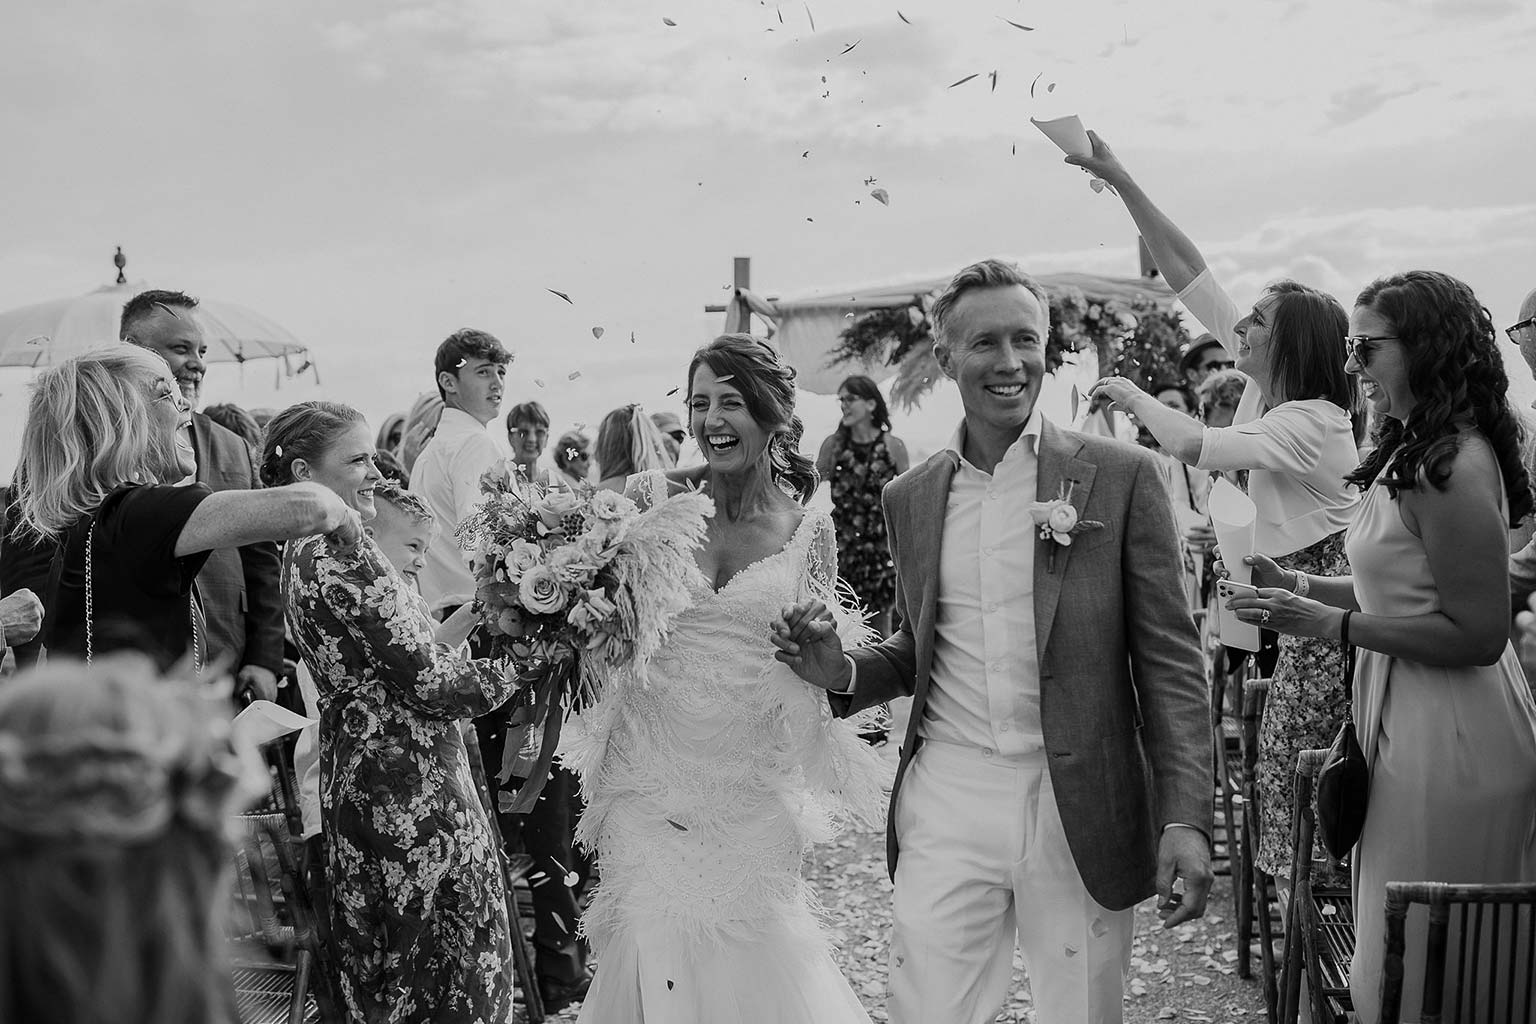 Vinka Design Features Real Weddings - bride and groom walk down aisle - bride wearing beautiful silk and tulle Chanel wedding dress from the Heart of Havana Collection with added underskirt - in black and white